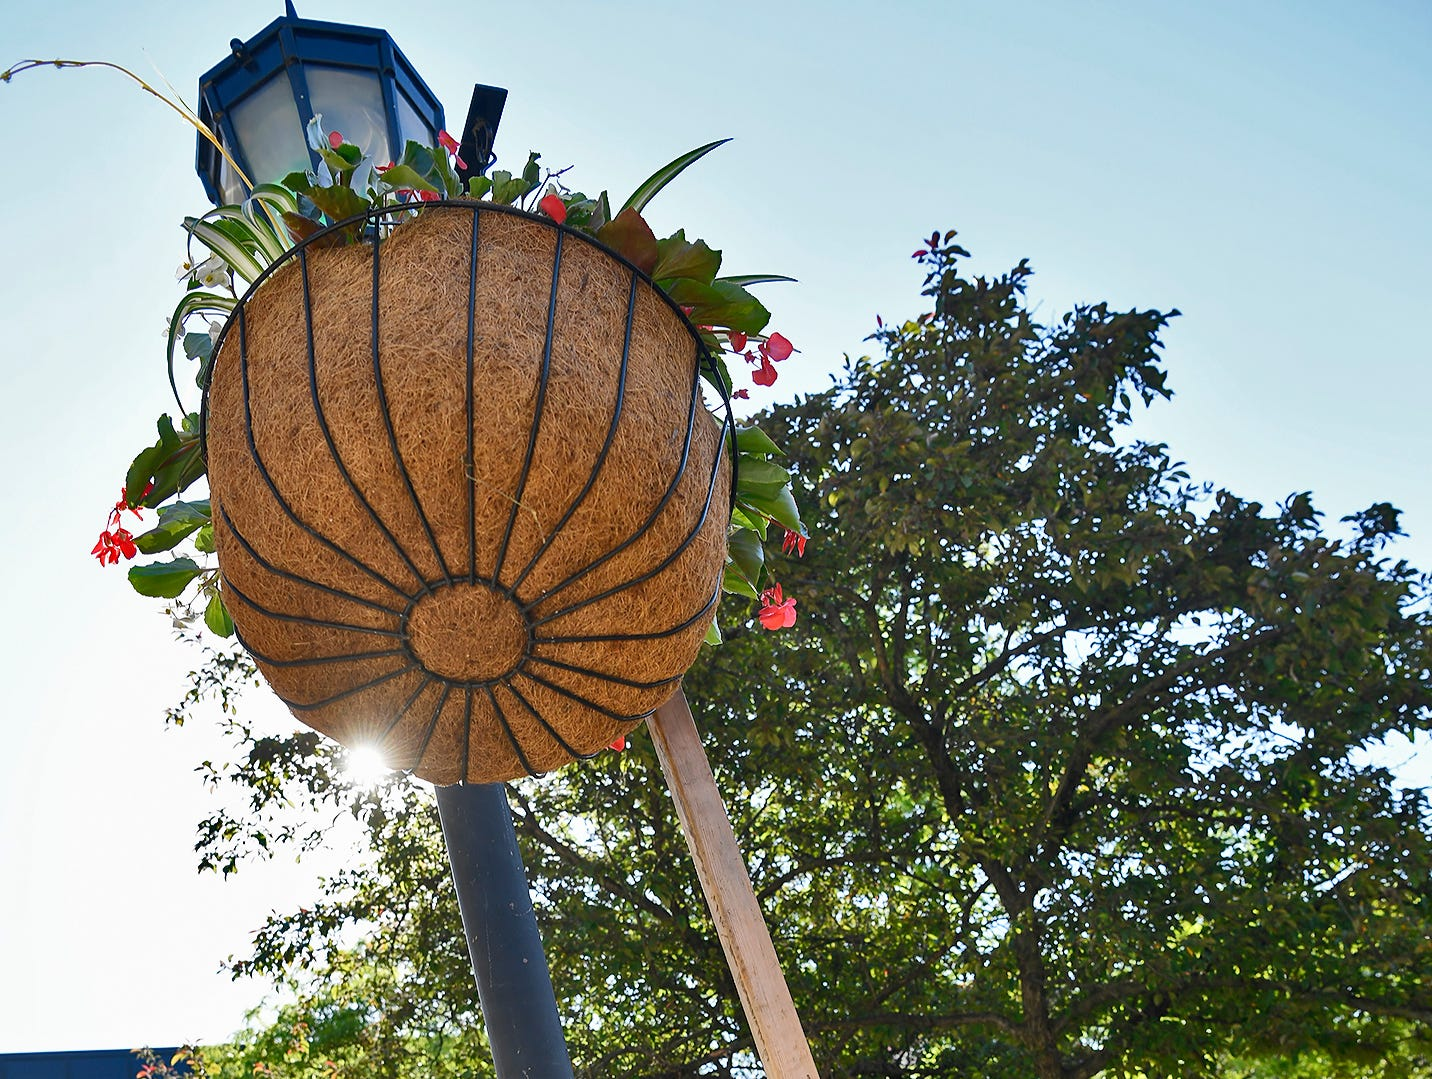 Chip Rodgers hangs one of 210 flowering baskets on Continental Square during the annual Garden Club of York flower planting, Wednesday, May 15, 2019.John A. Pavoncello photo